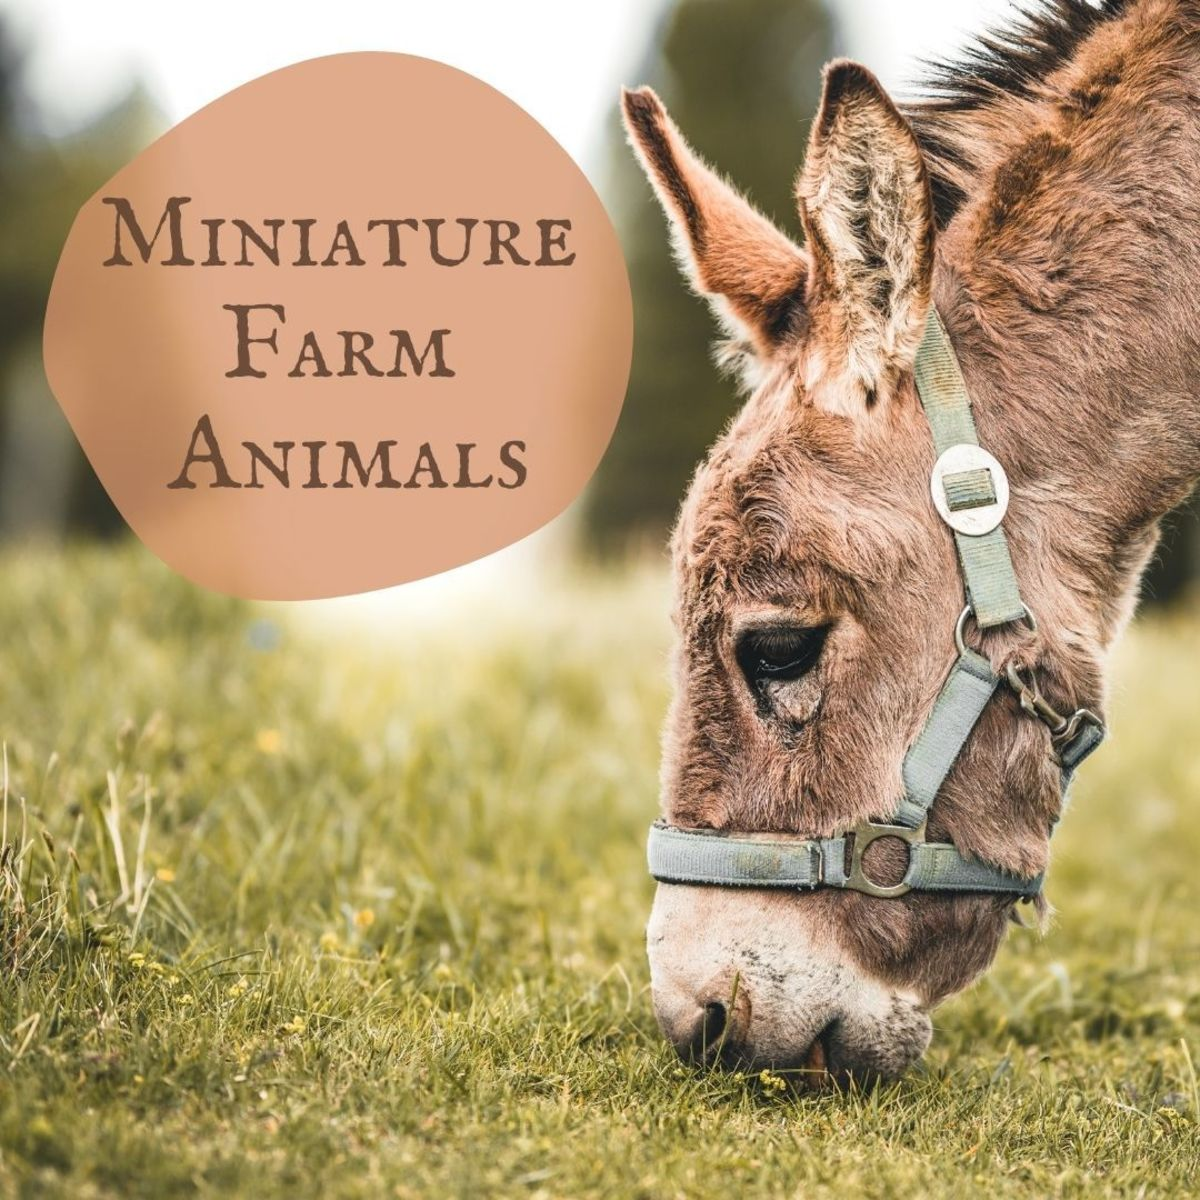 Read all about mini farm animals such as pygmy goats, miniature horses, and potbellied pigs.